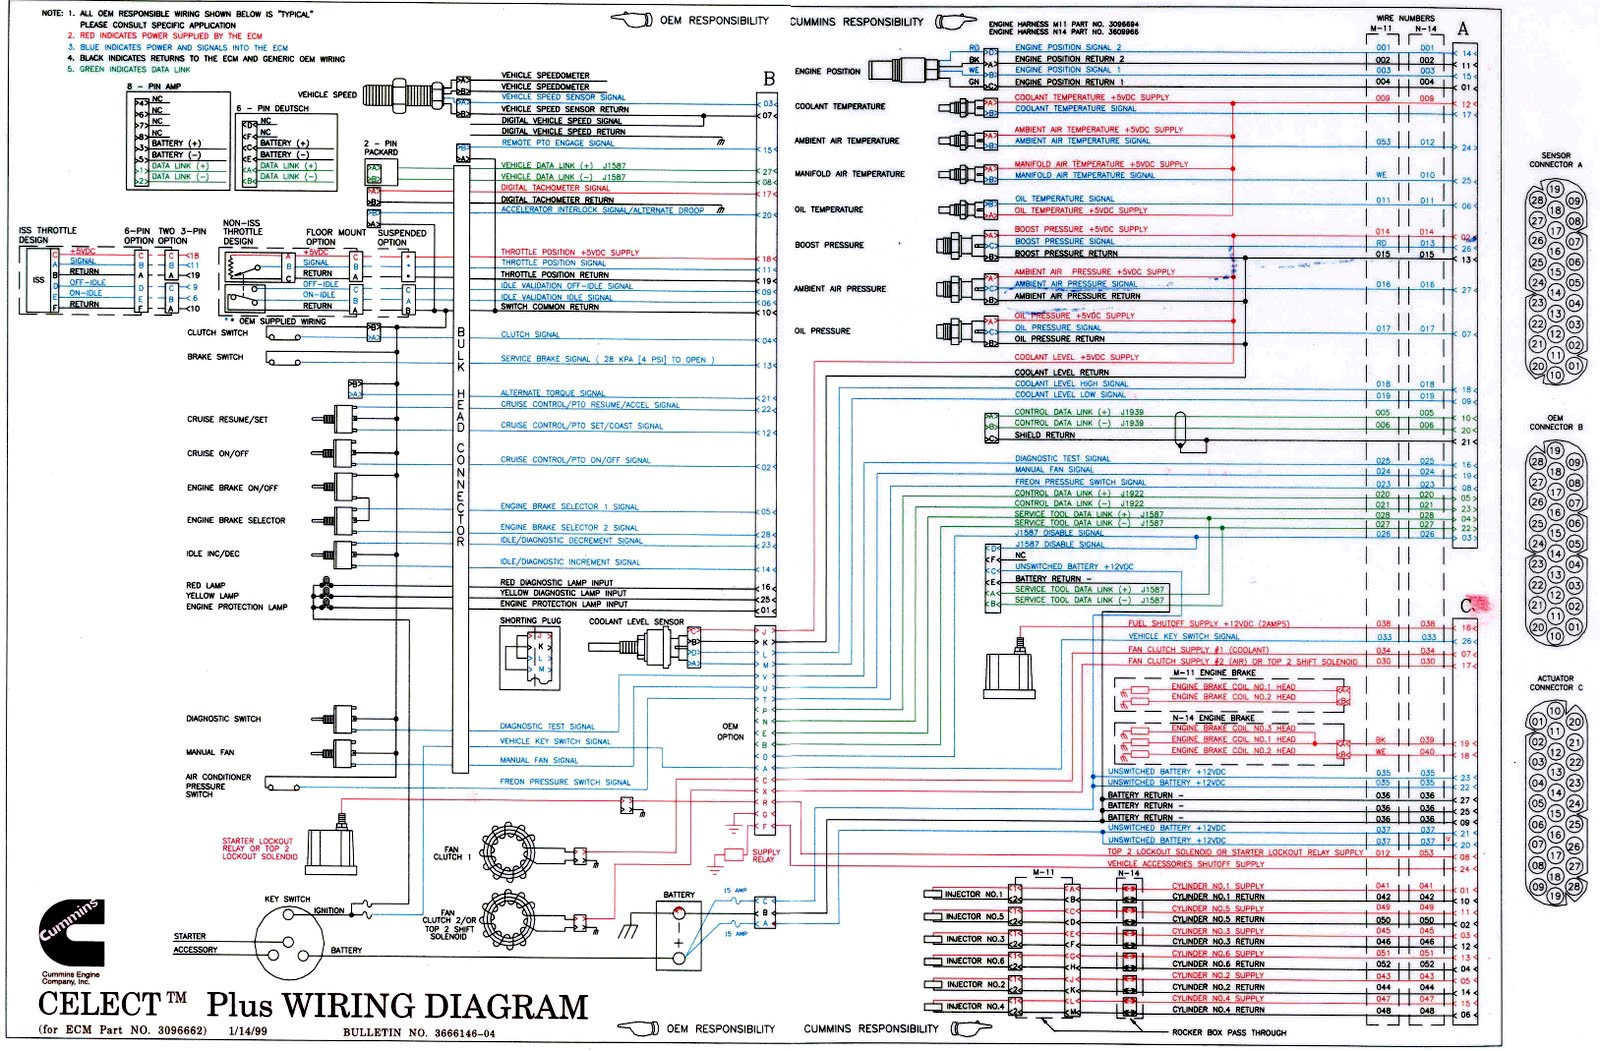 toyota rav4 radio wiring diagram images toyota rav4 dvd player wiring diagram chevy colorado radio harness toyota rav4